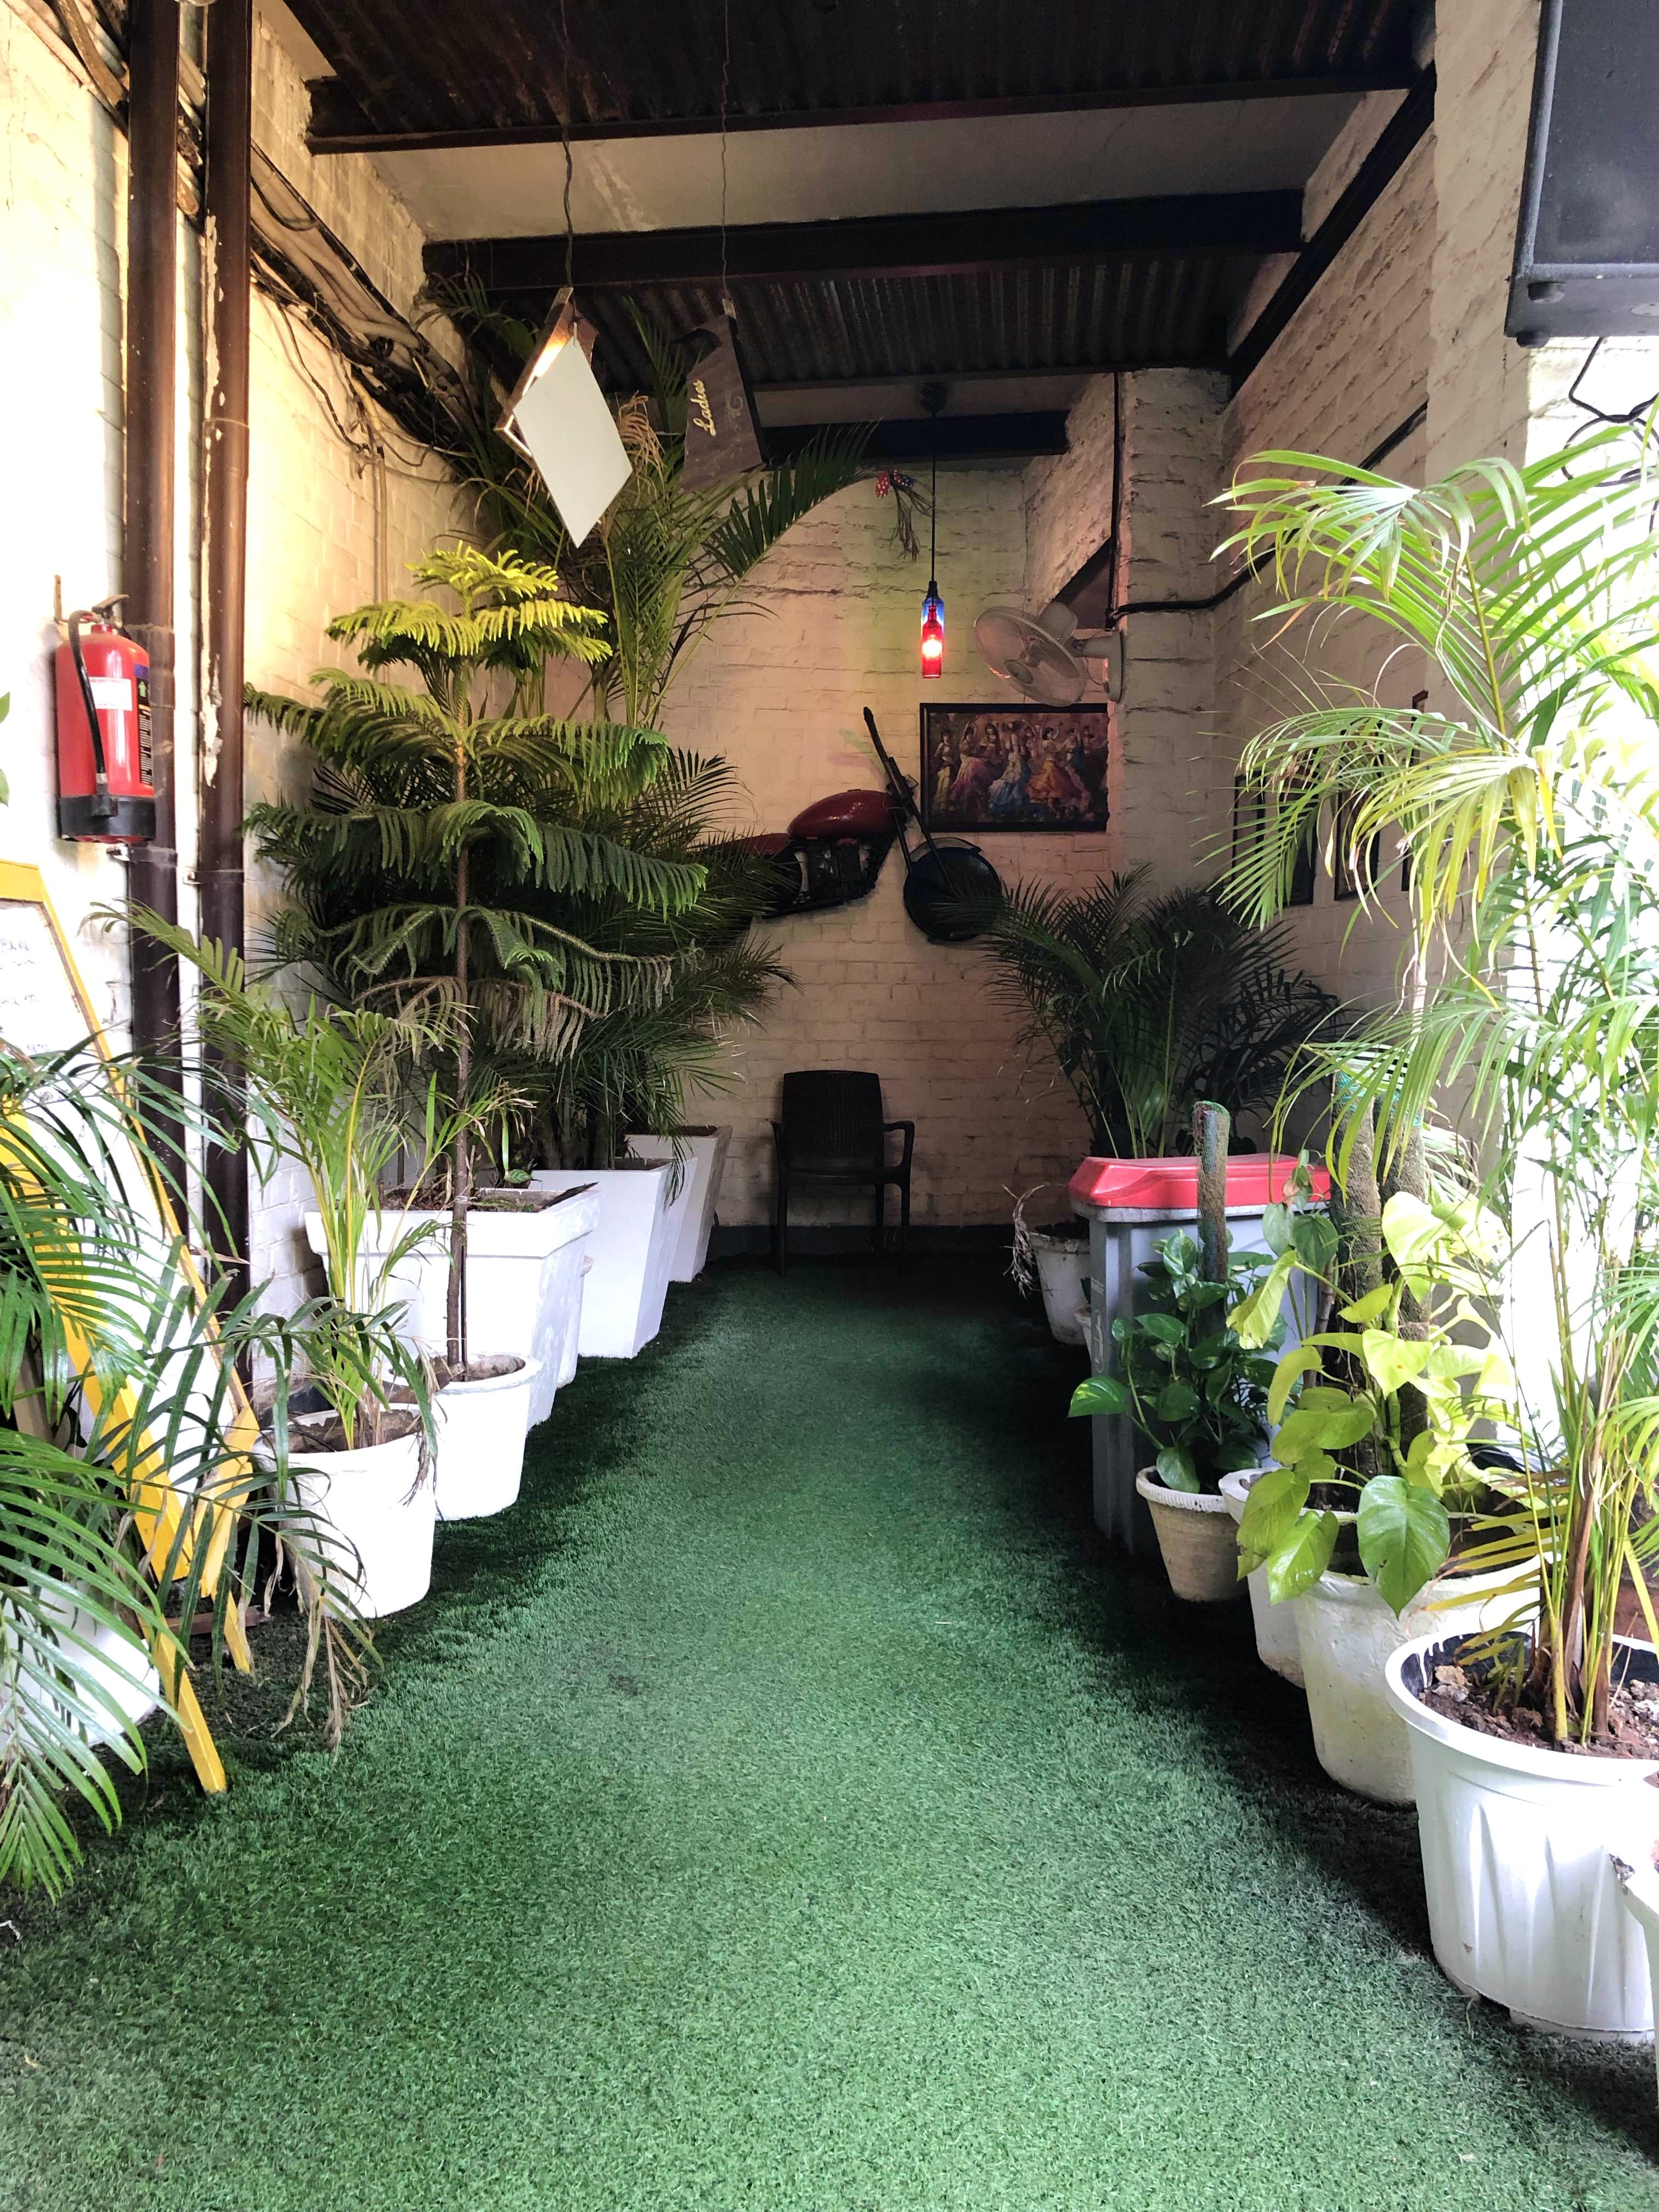 Building,Houseplant,Grass,Tree,Courtyard,House,Plant,Aisle,Garden,Flooring